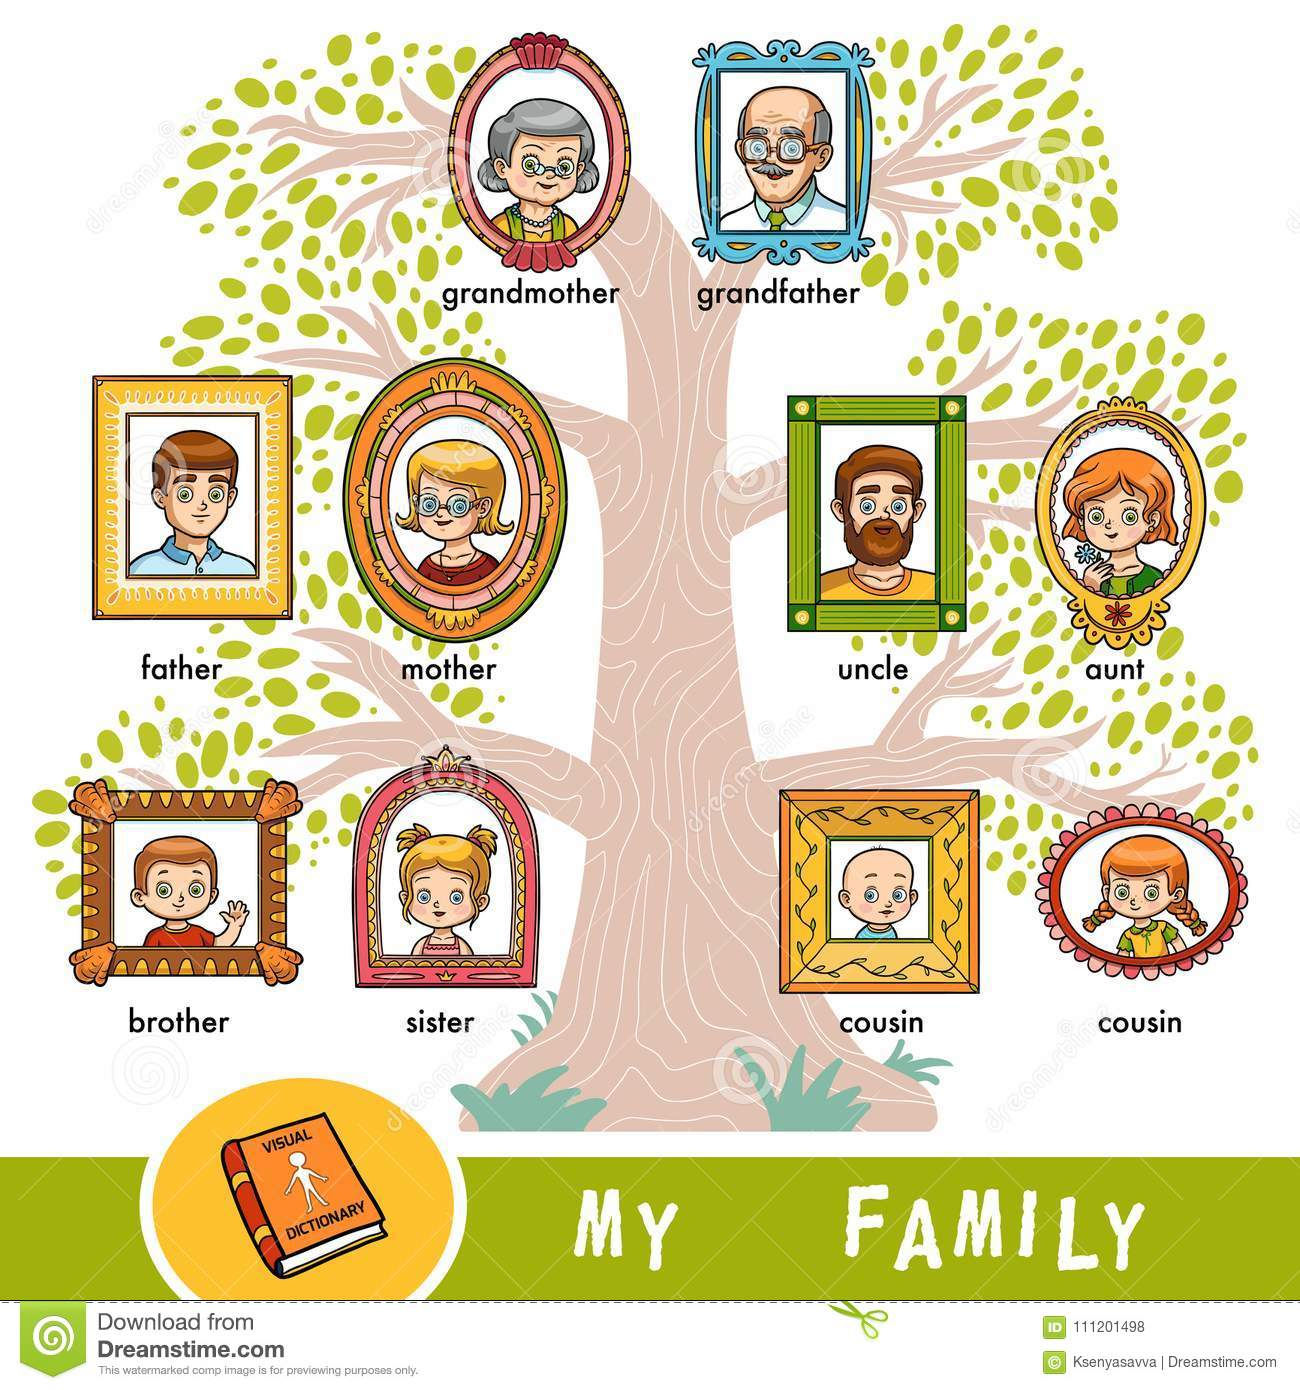 Vector Cartoon Family Tree With Images Of People In Frames Stock ...